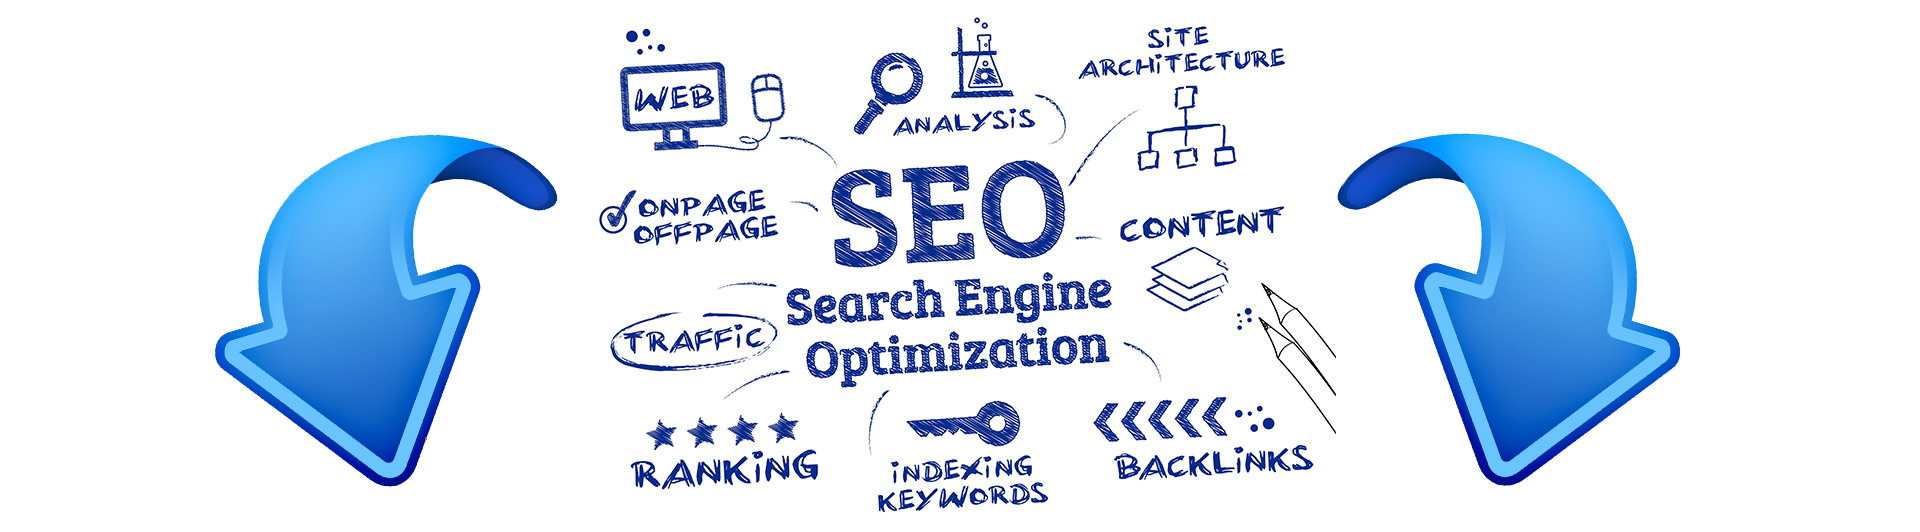 seo-graphic-1 SEO Analysis